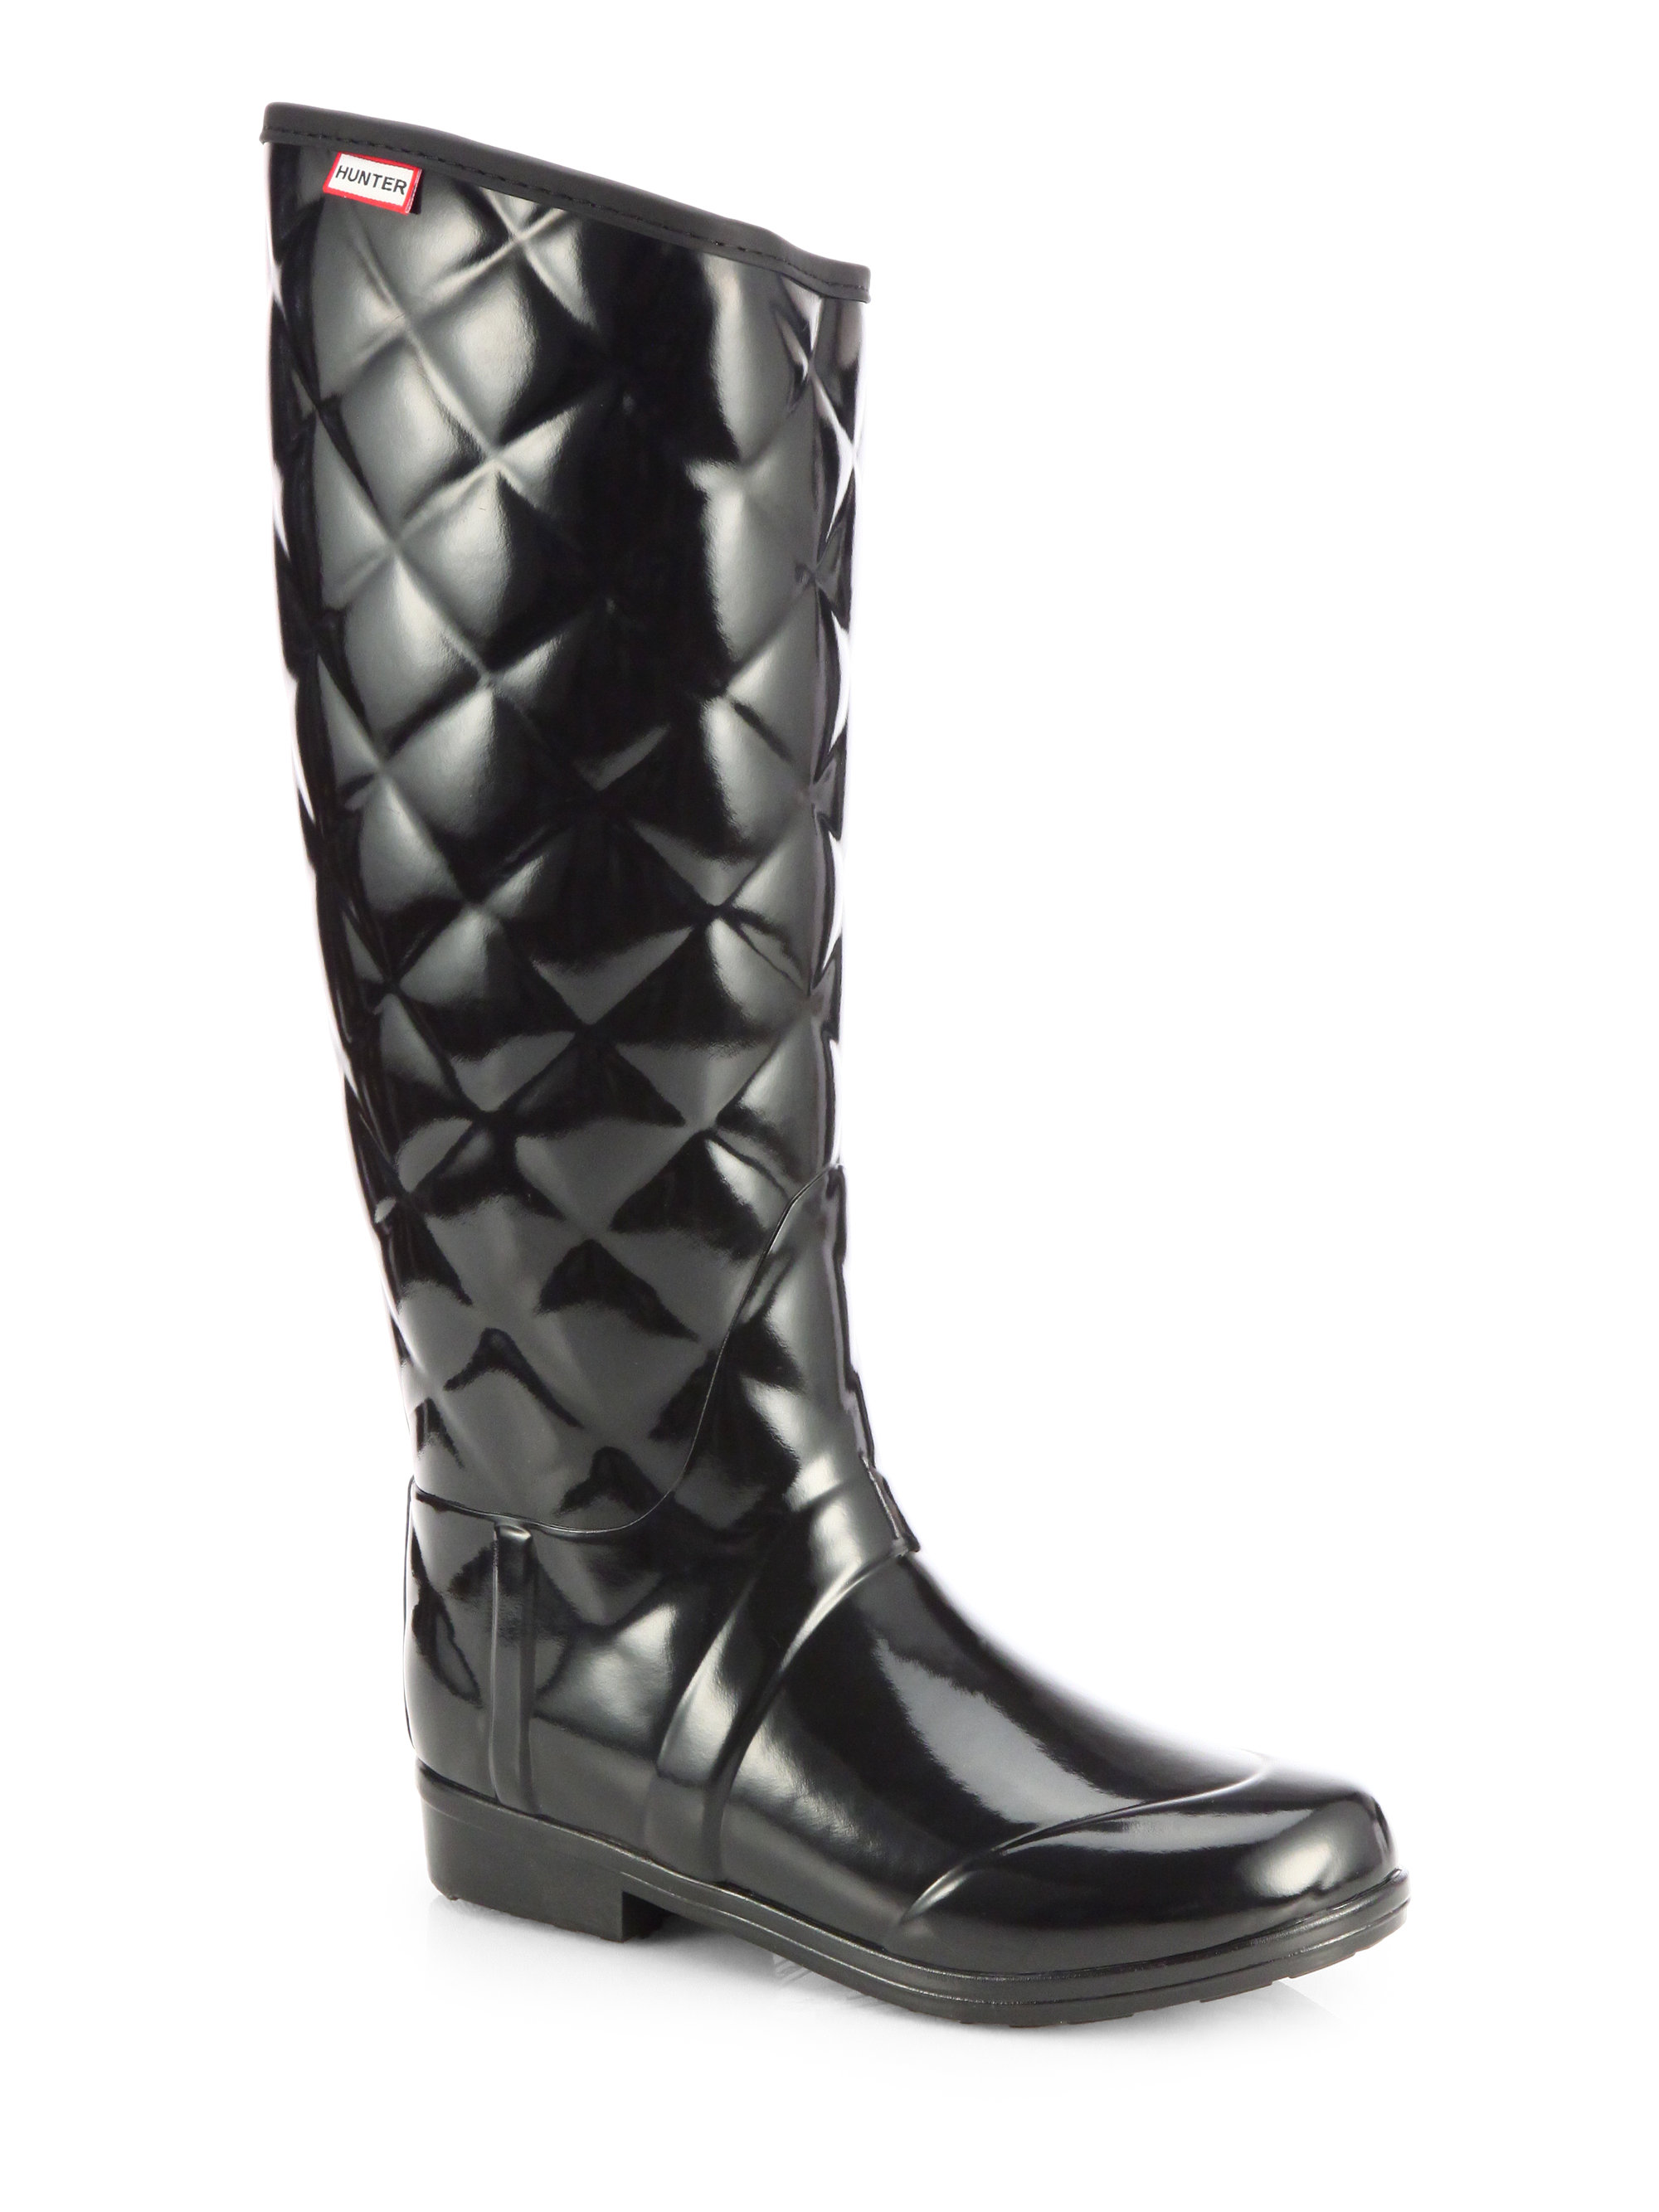 33a55020635a Lyst - HUNTER Quilted Rain Boots in Black